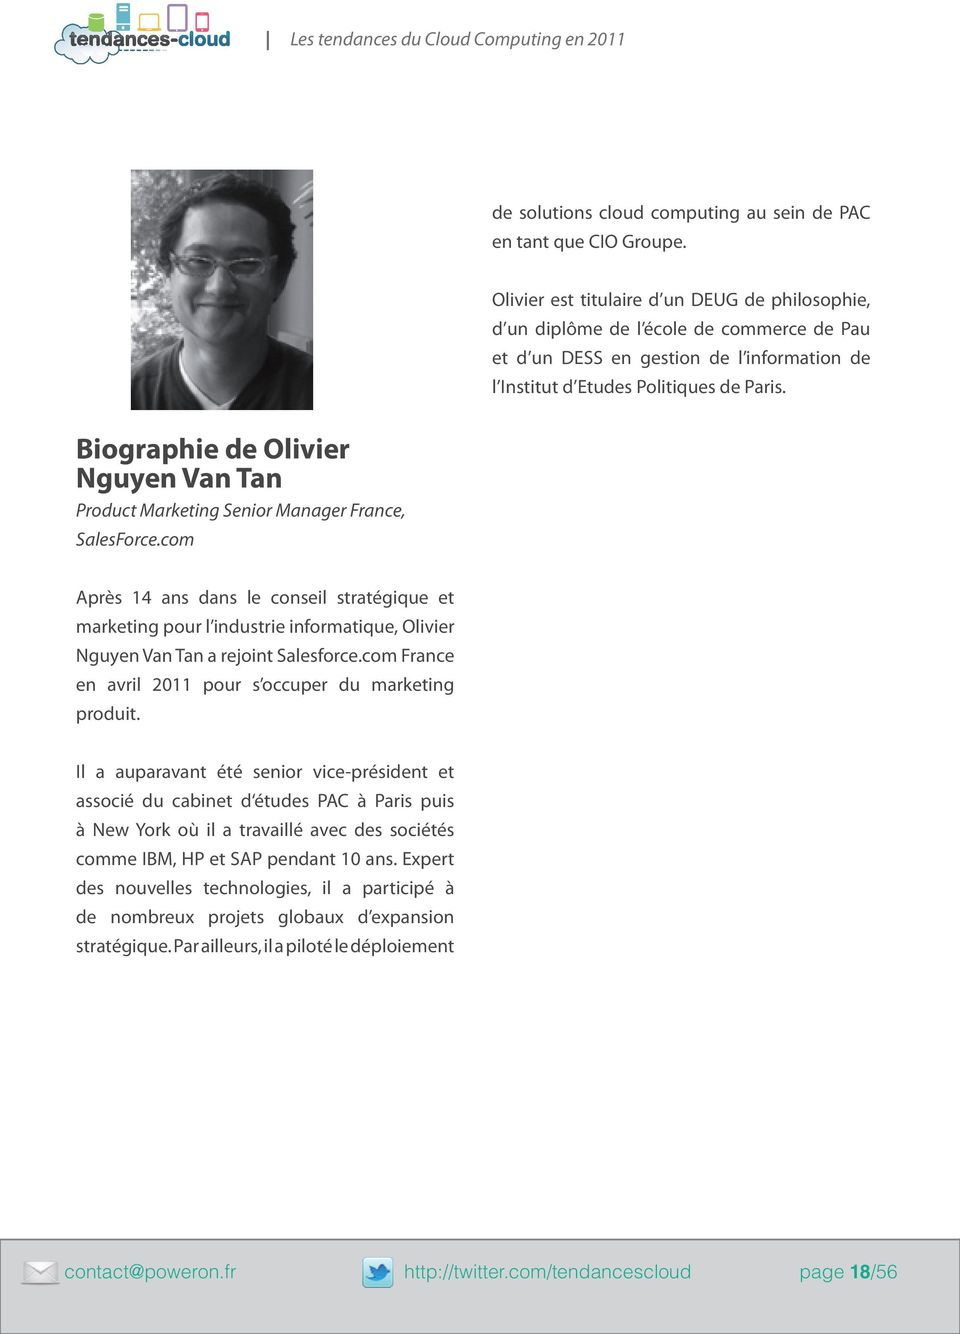 Biographie de Olivier Nguyen Van Tan Product Marketing Senior Manager France, SalesForce.